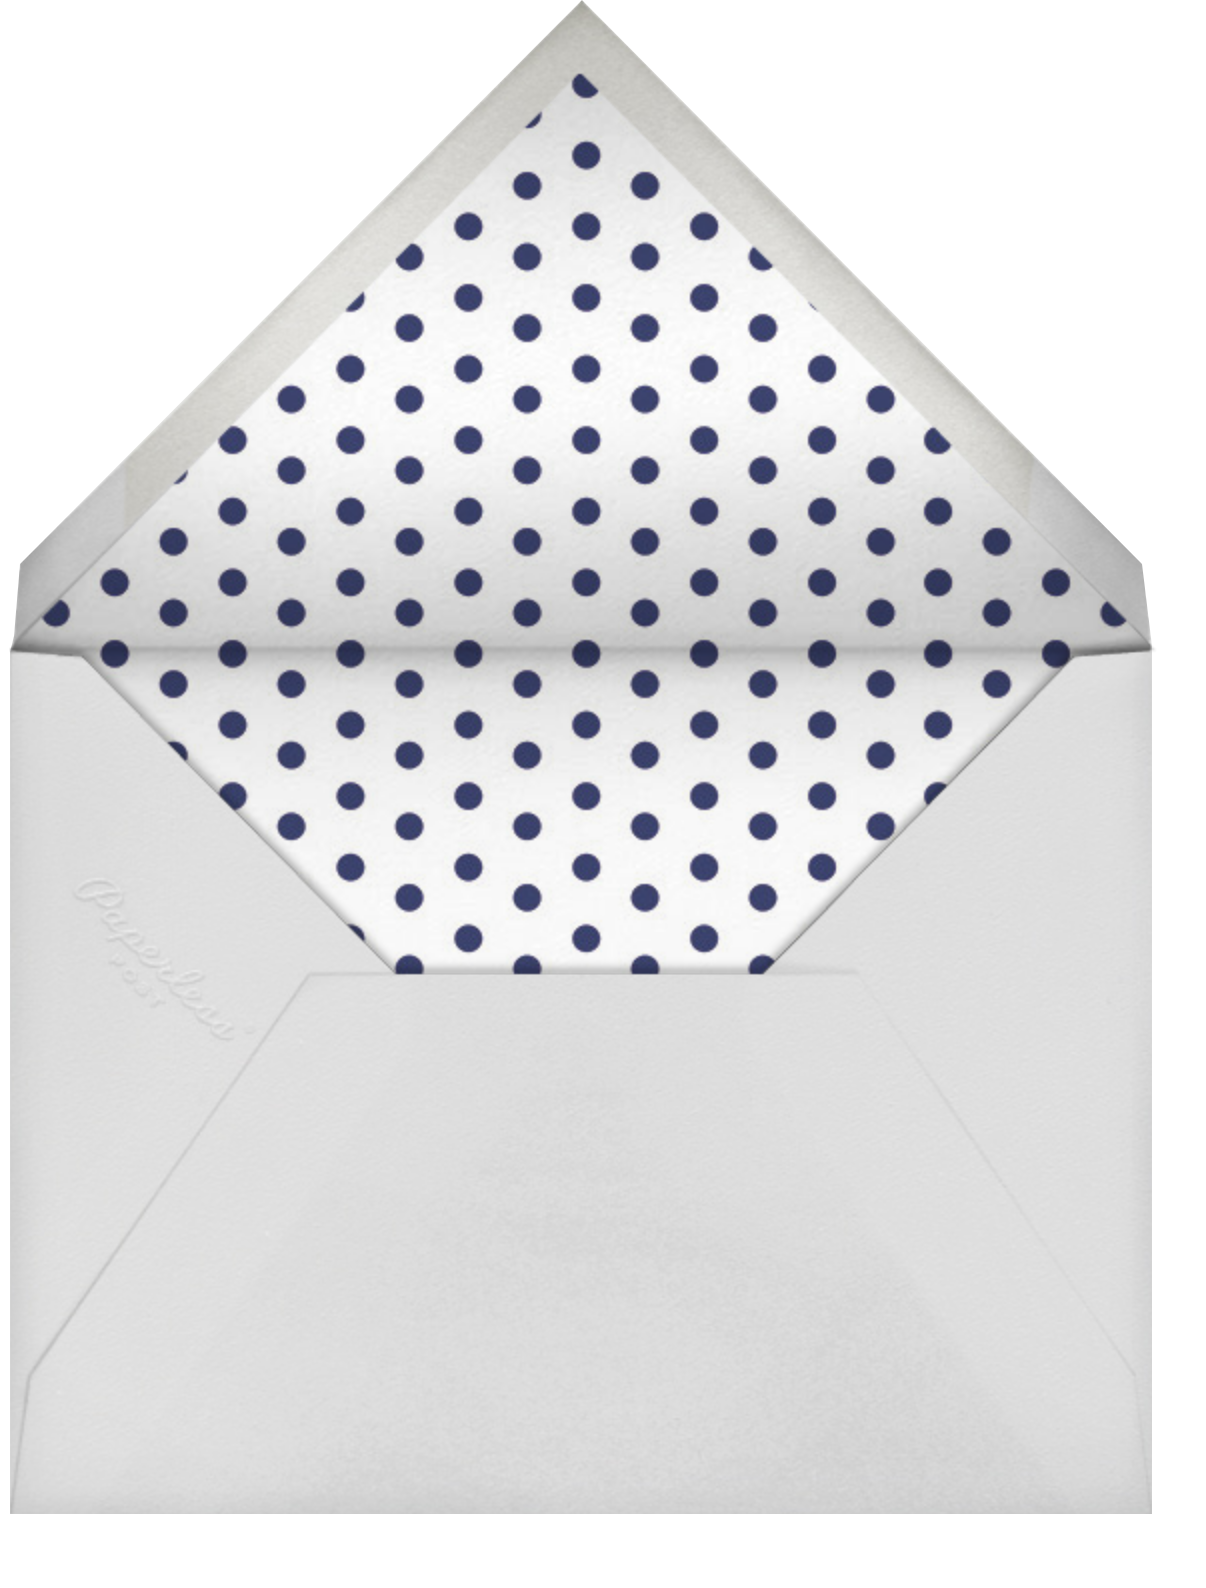 Carnaby (Tall) - Red/Blue - Paperless Post - Envelope